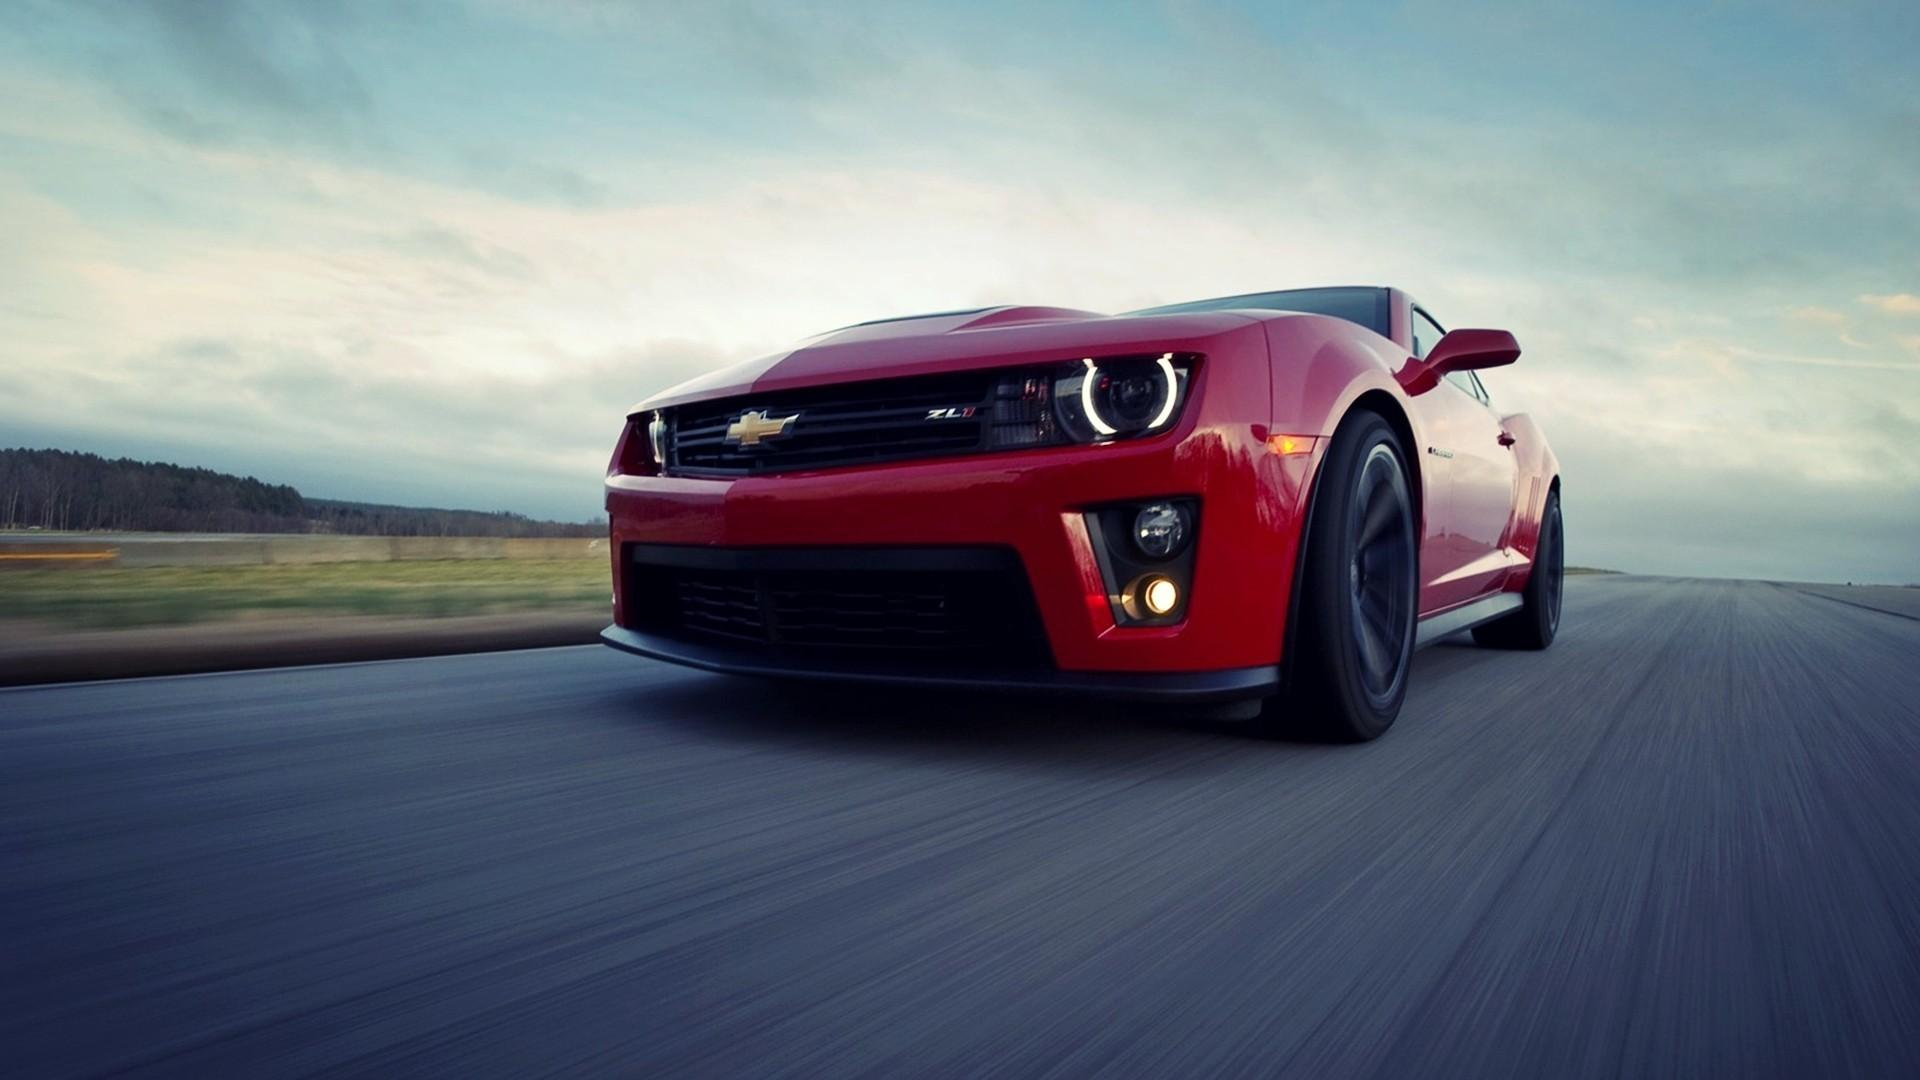 Chevrolet Camaro Zl1 Camaro Car HD Wallpaper Desktop 1920x1080